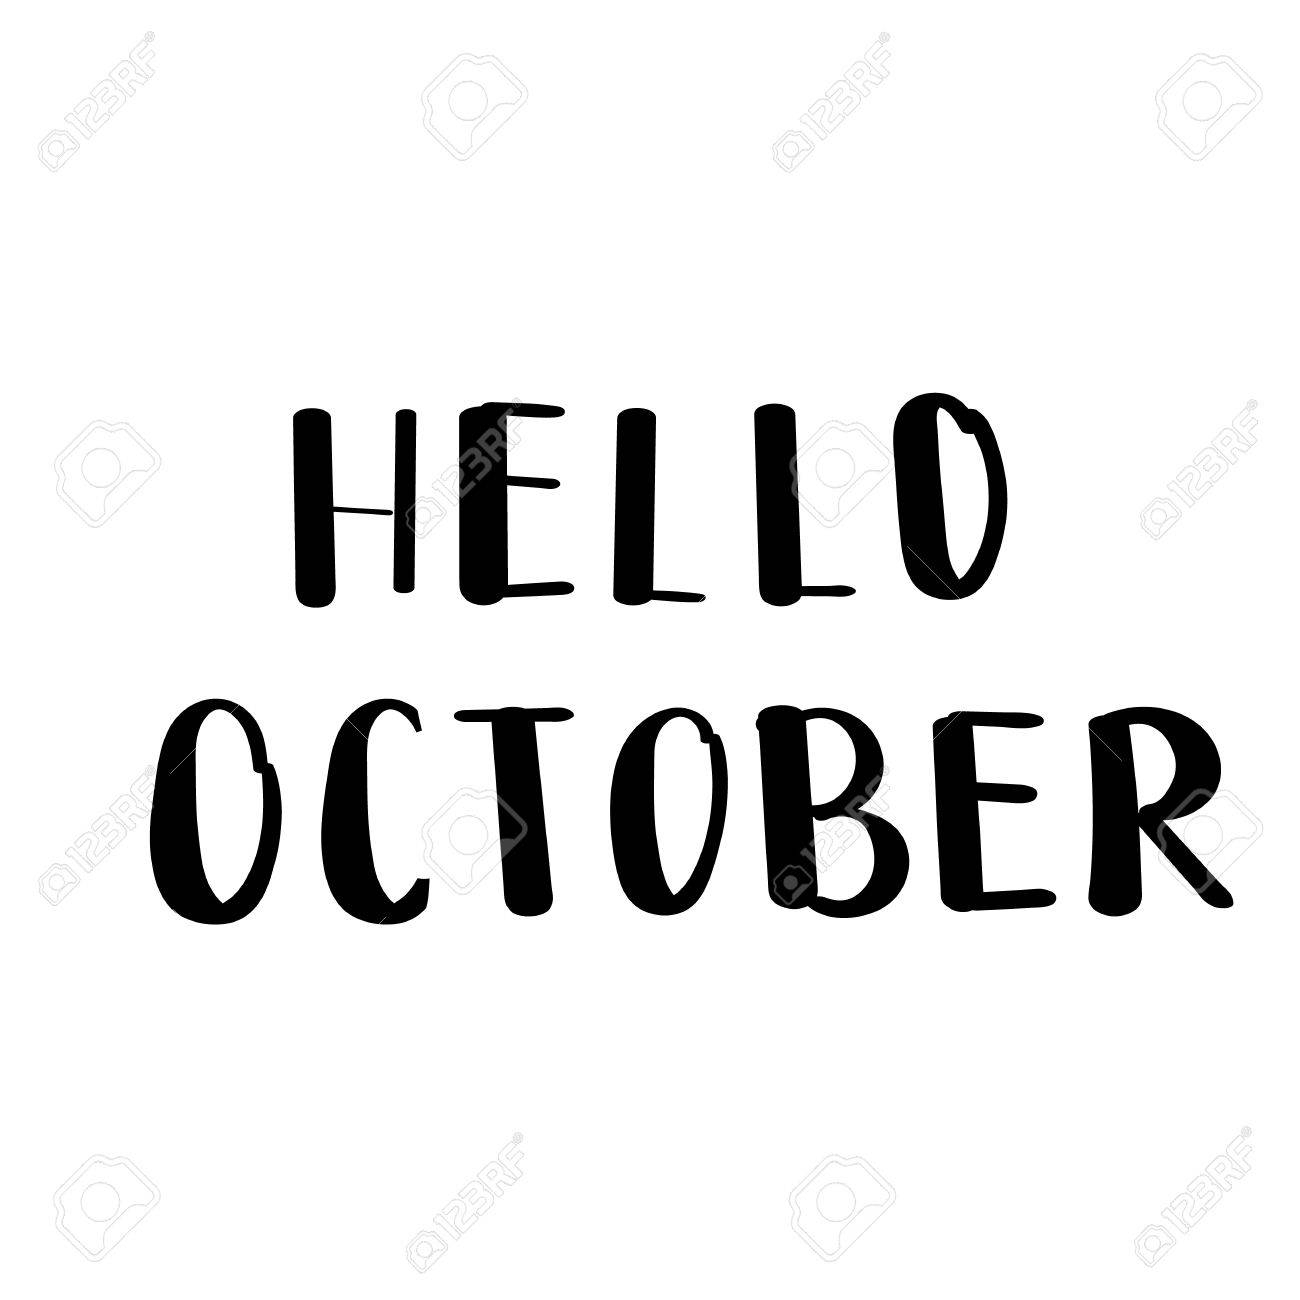 Hello October Hand Drawn Paint Brush Text Calligraphy For Greeting..